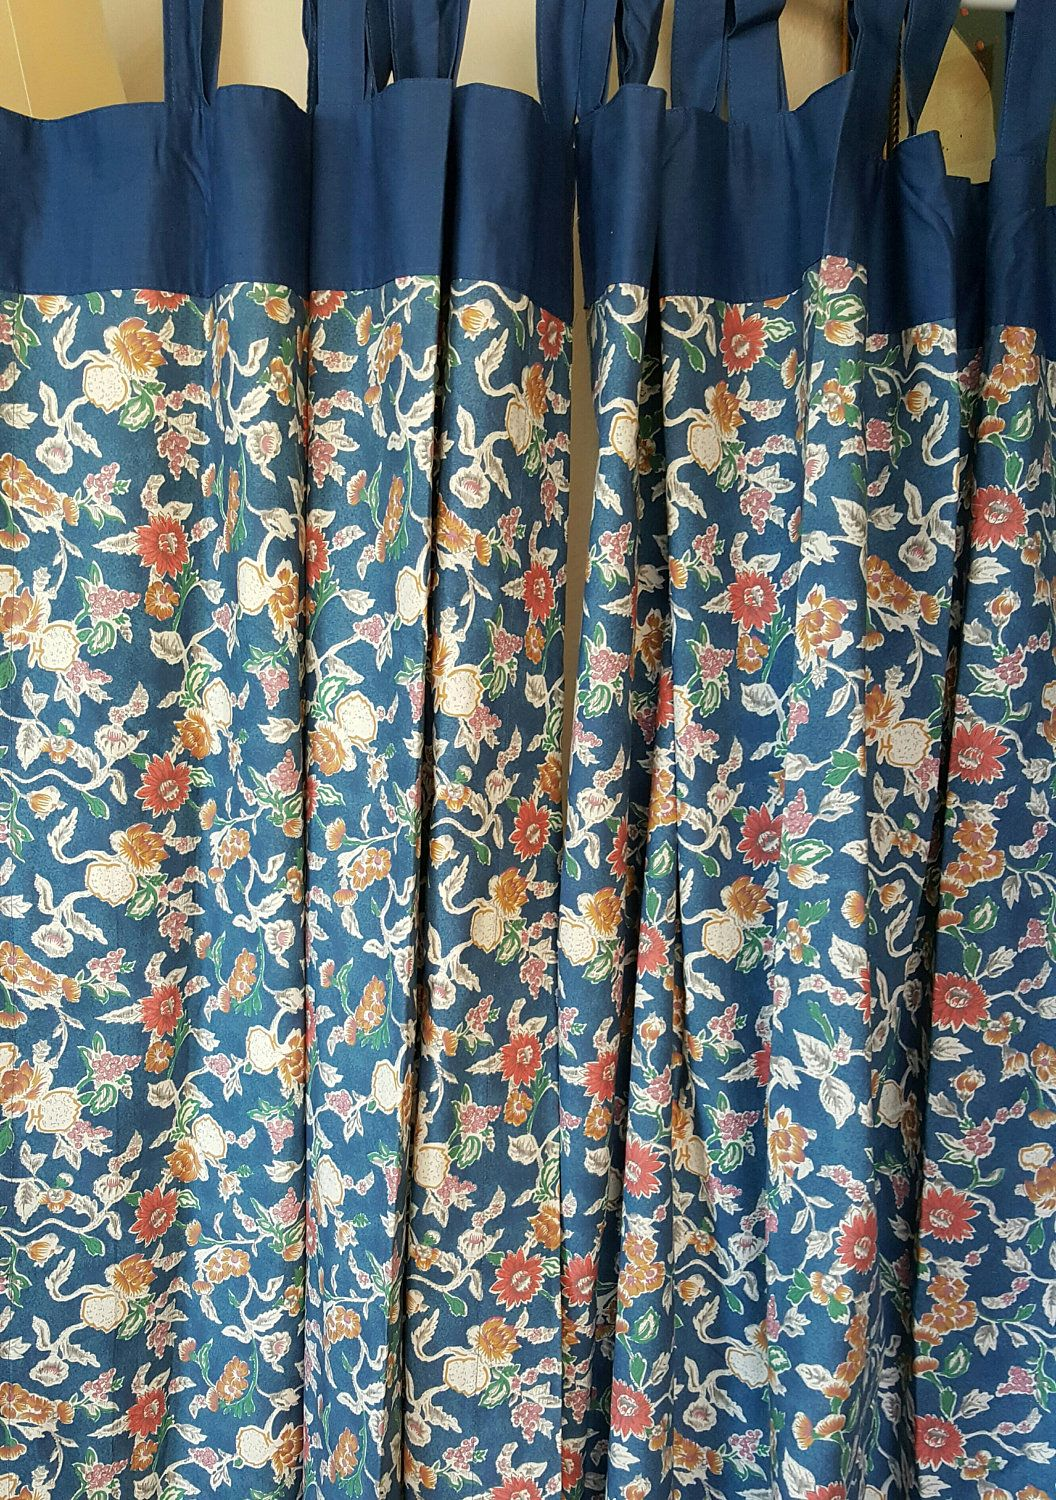 Drapes Curtains Panels 2 Ralph Lauren Jardin French Country